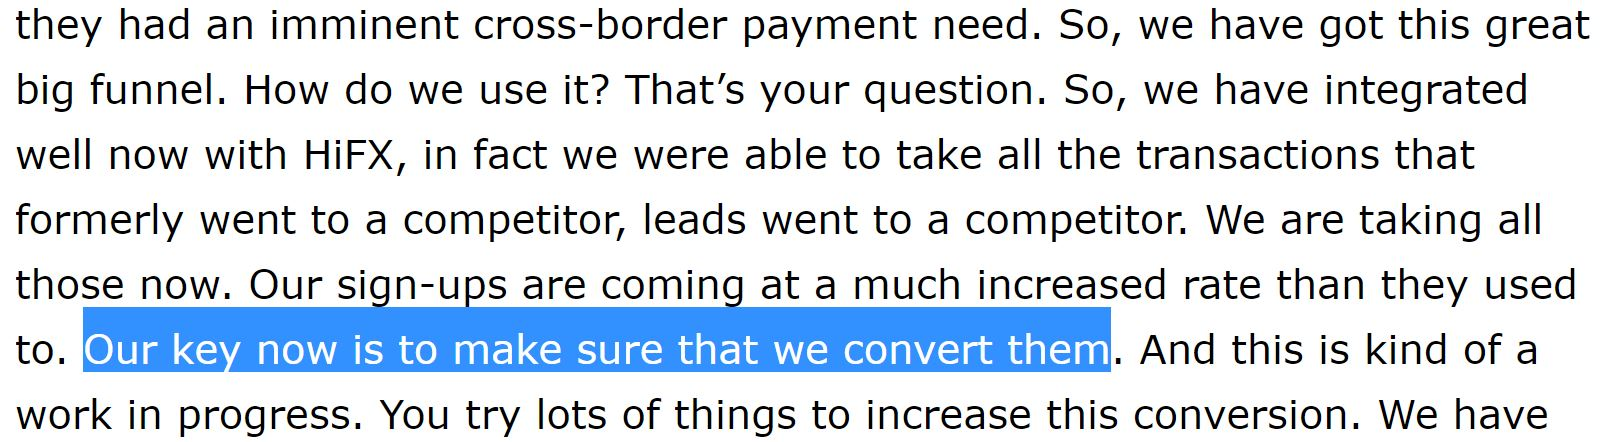 Ria Q2 Earnings Call Quote about XE conversion